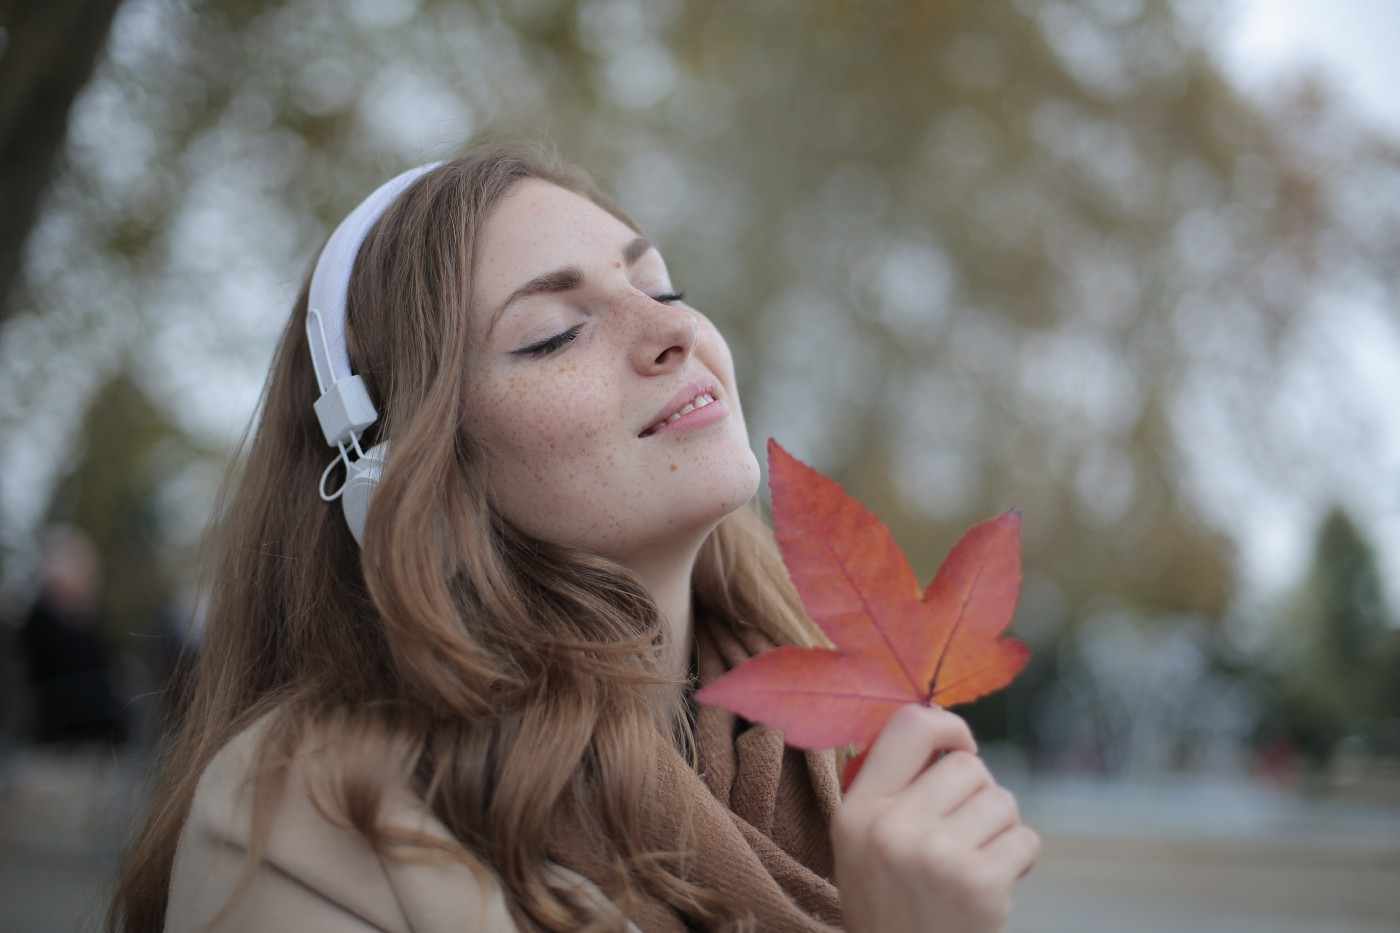 A smiling woman holds a leaf while listening to music